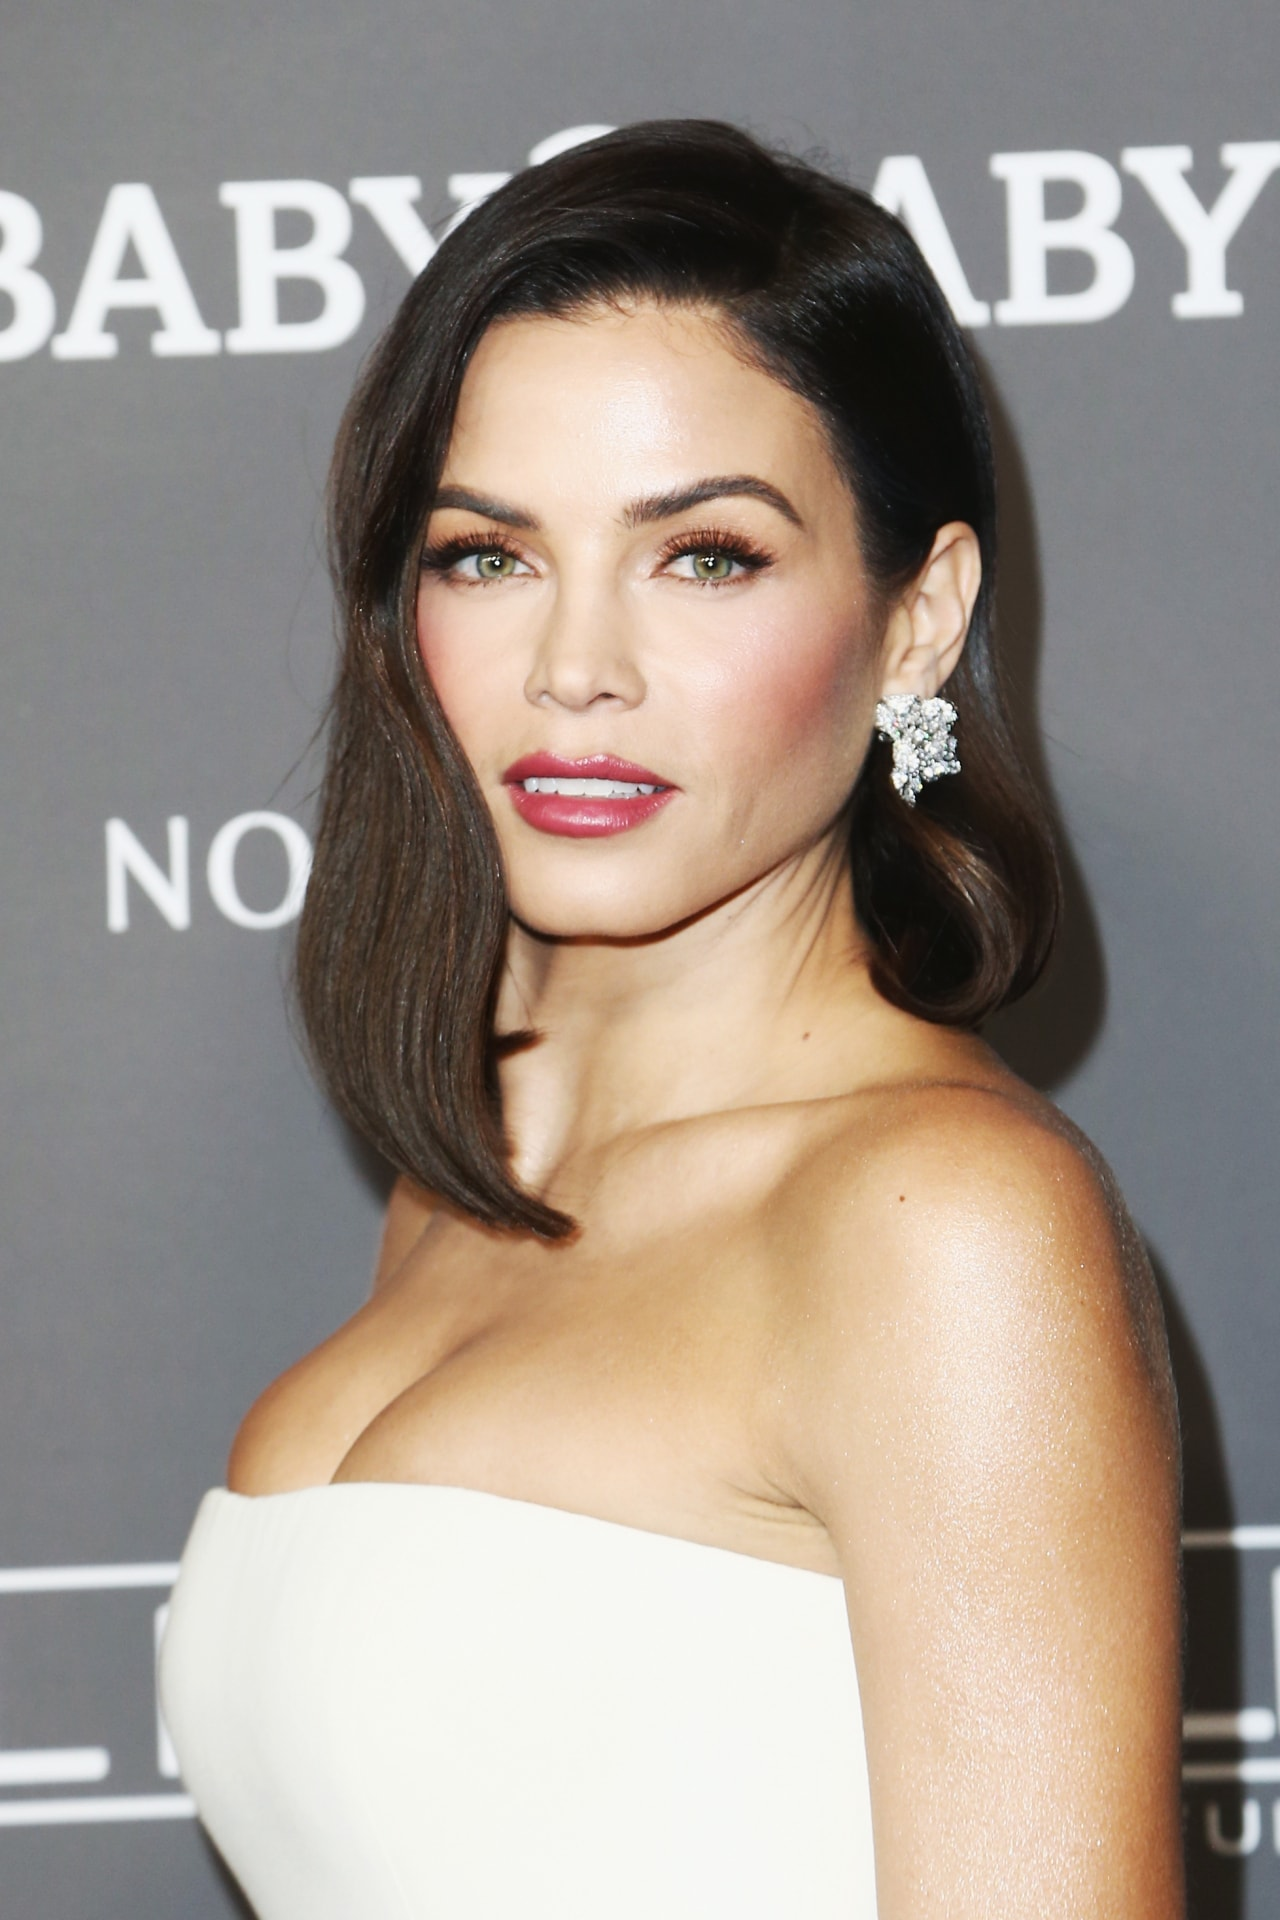 Jenna Dewan opens up about how she's dealing with the end of her marriage